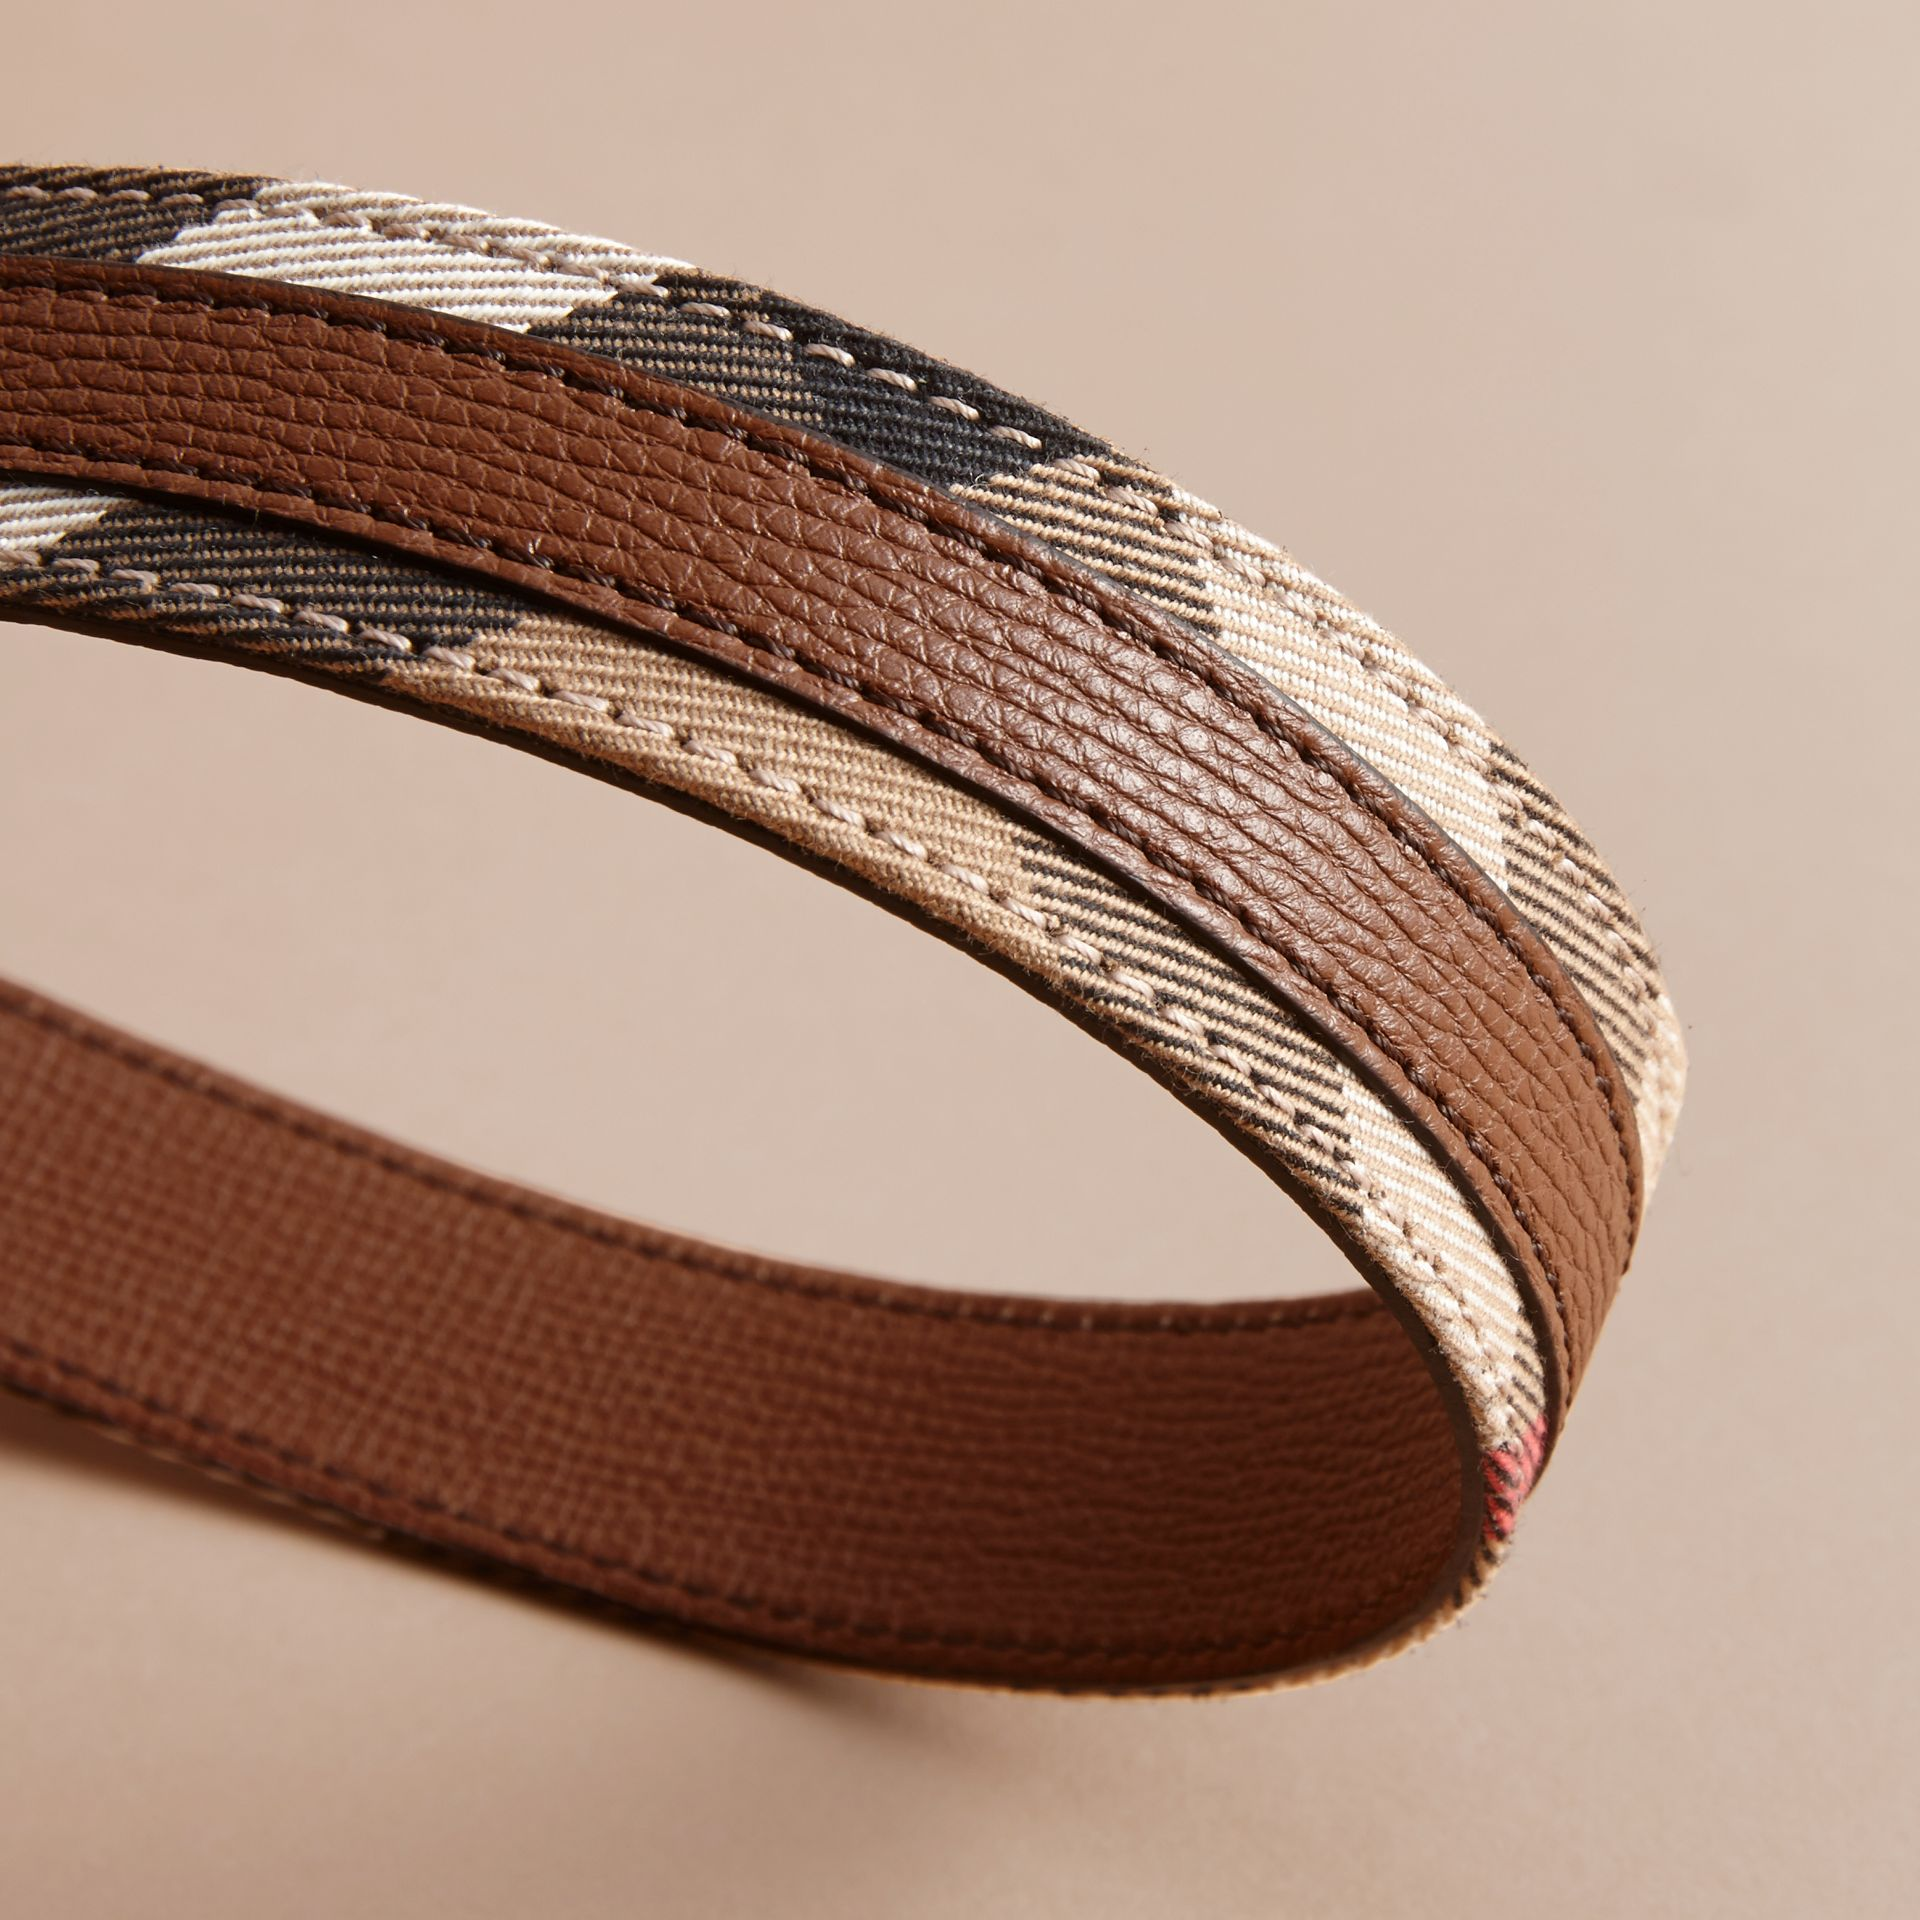 House Check and Grainy Leather Belt in Camel/tan - Women | Burberry - gallery image 3